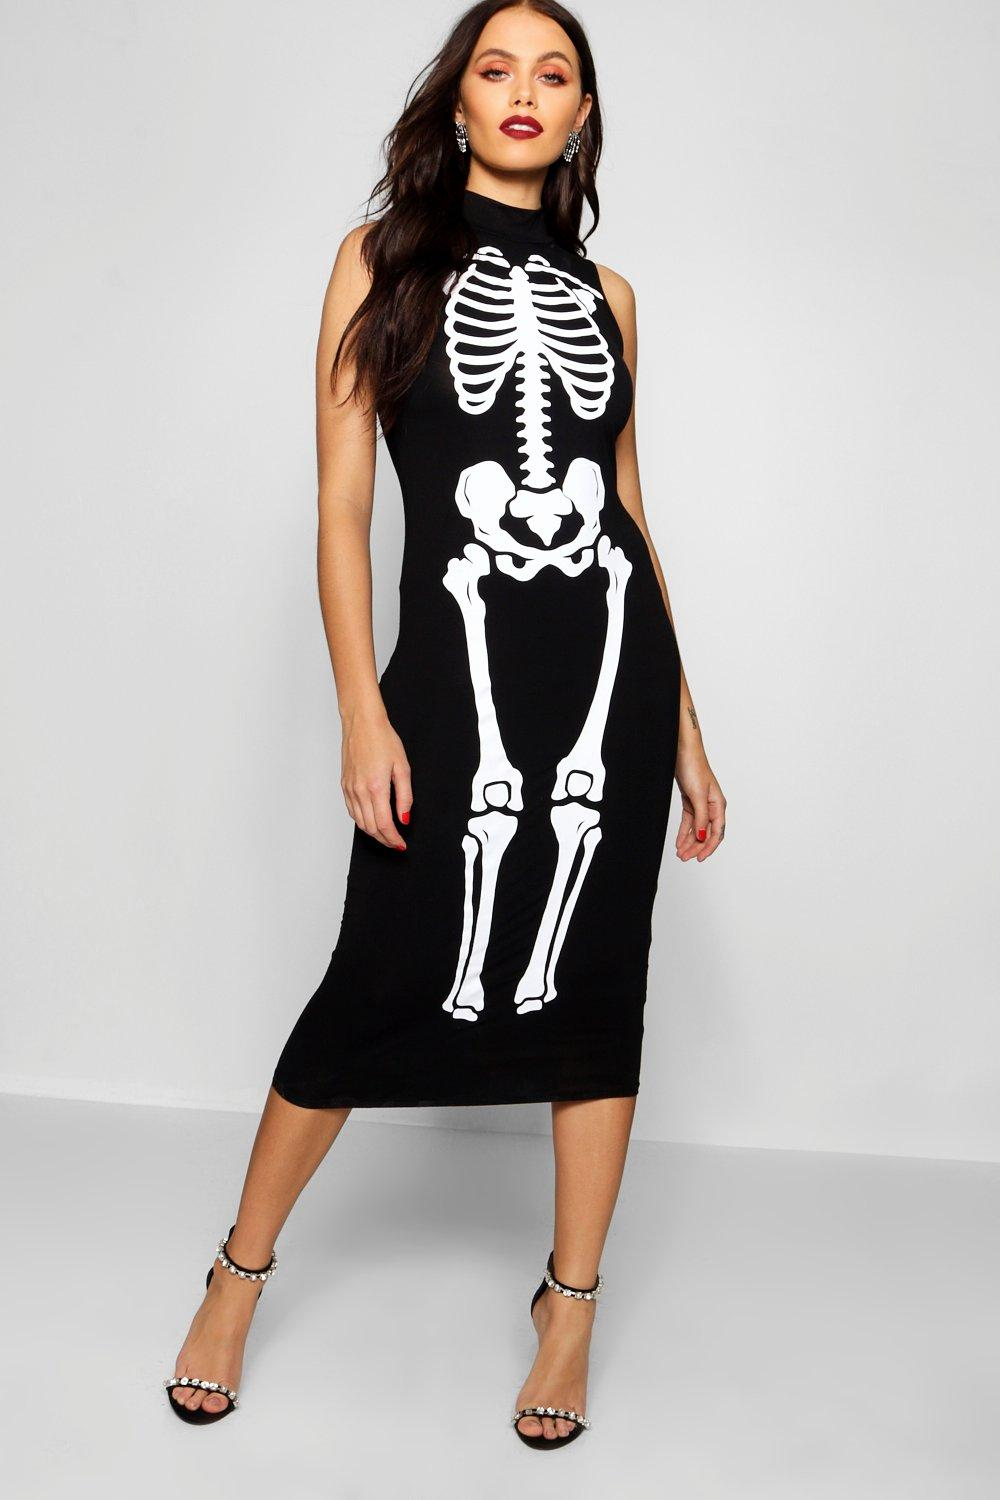 Halloween High Print Skeleton Dress Midi Neck 8r80qwB